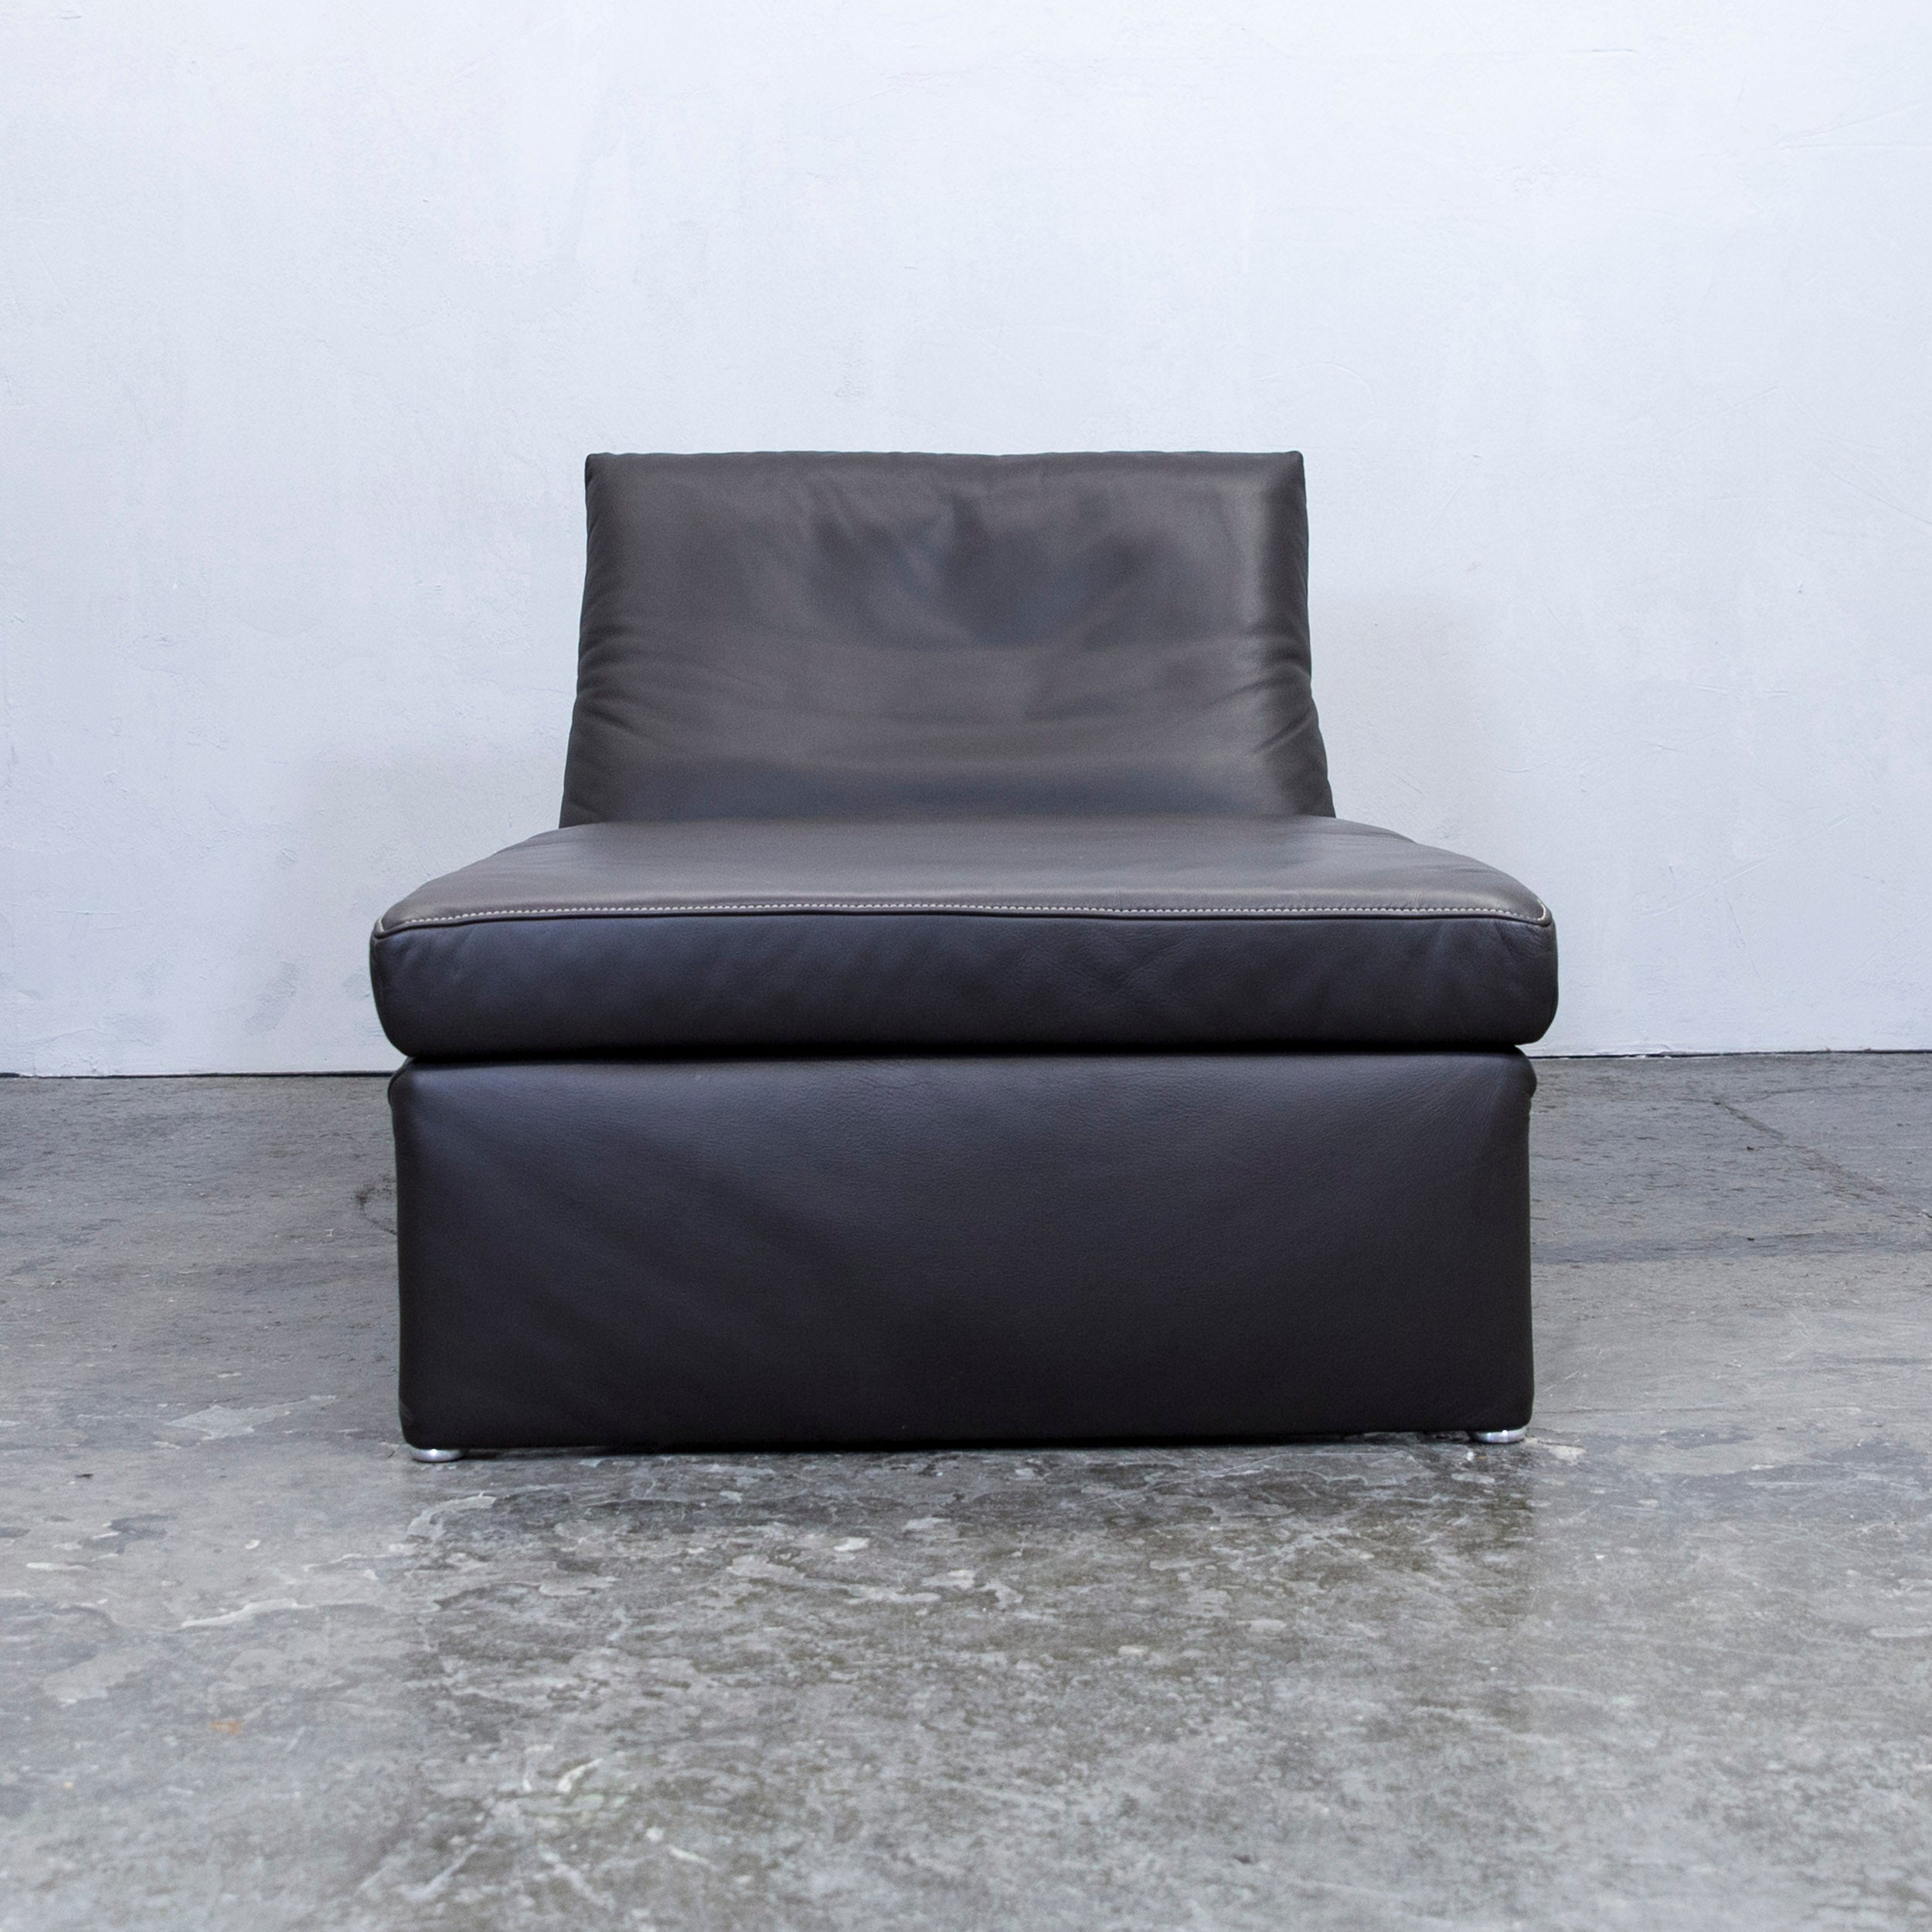 recamiere ottomane ottomane recamiere unterschied neu recamiere couch great gallery sofa mit. Black Bedroom Furniture Sets. Home Design Ideas